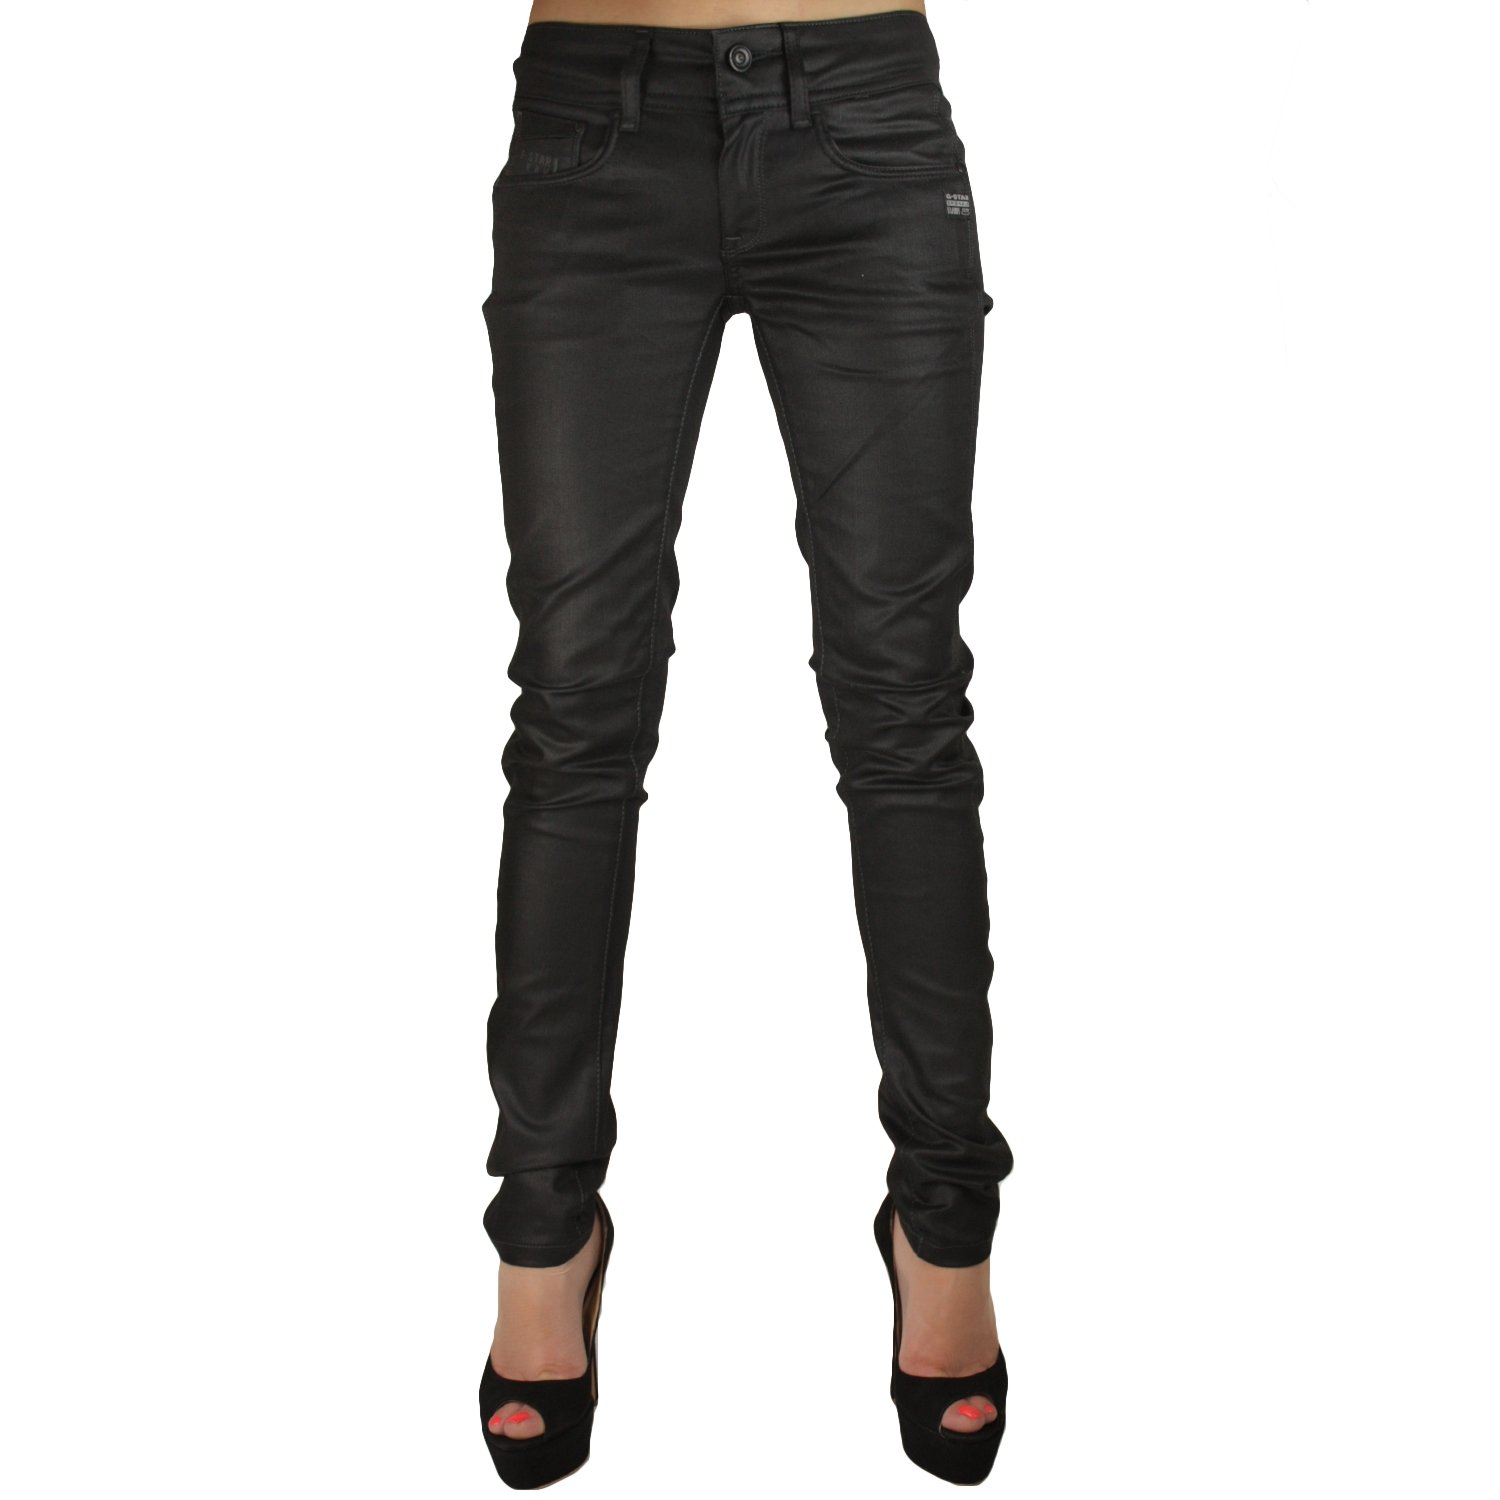 G-star Women's Attacc Staright Jeans Pant 60583.5245.89 Dk Aged (28x32)